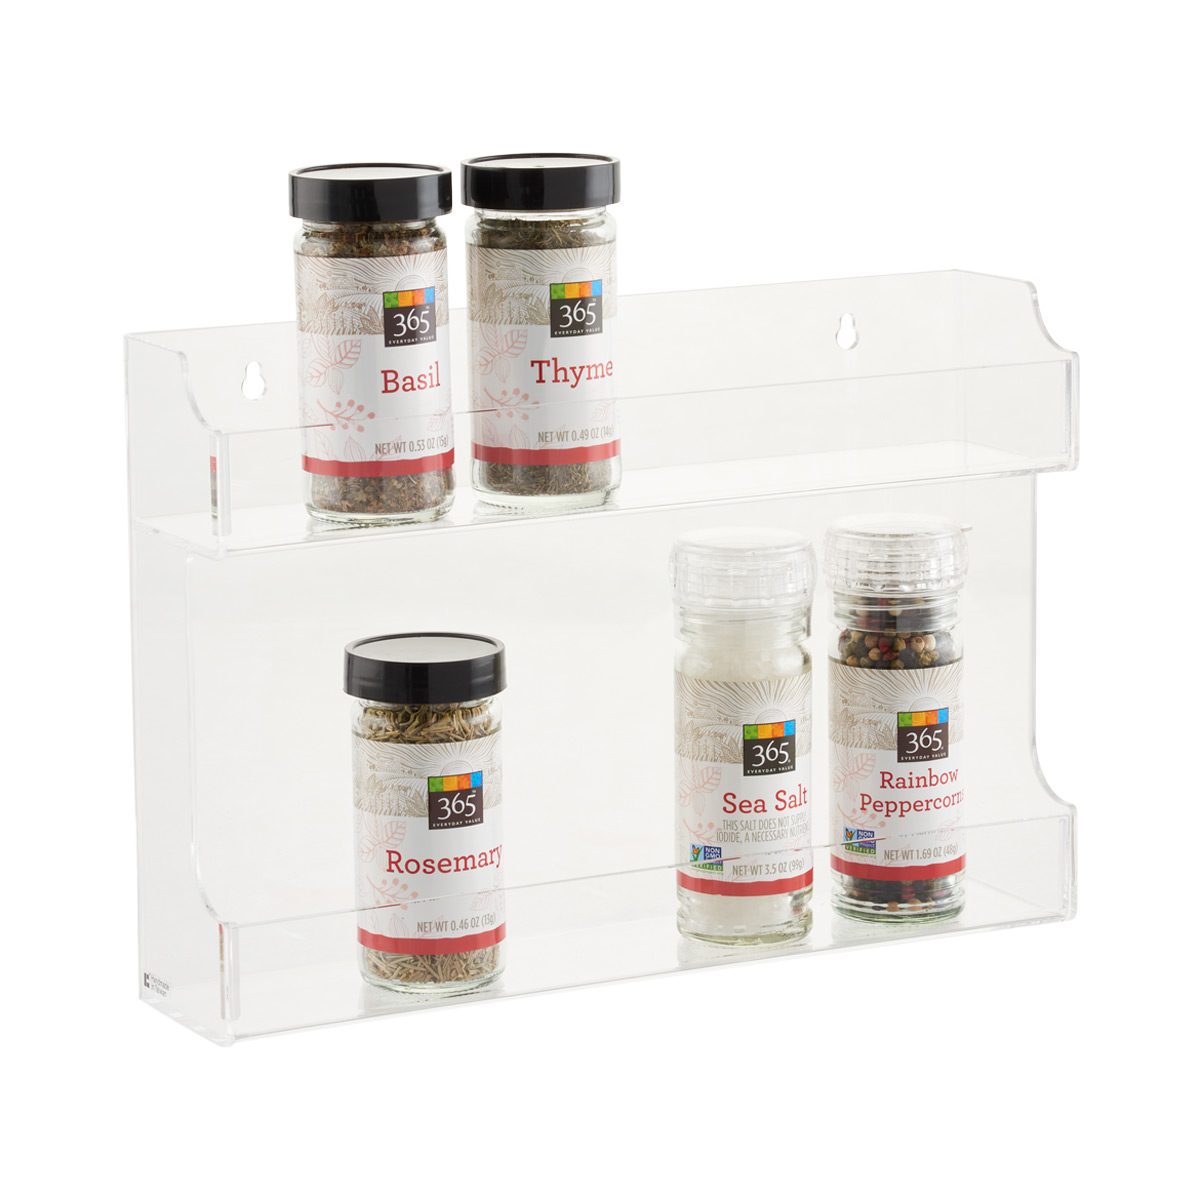 Image of: Double Acrylic Spice Rack The Container Store